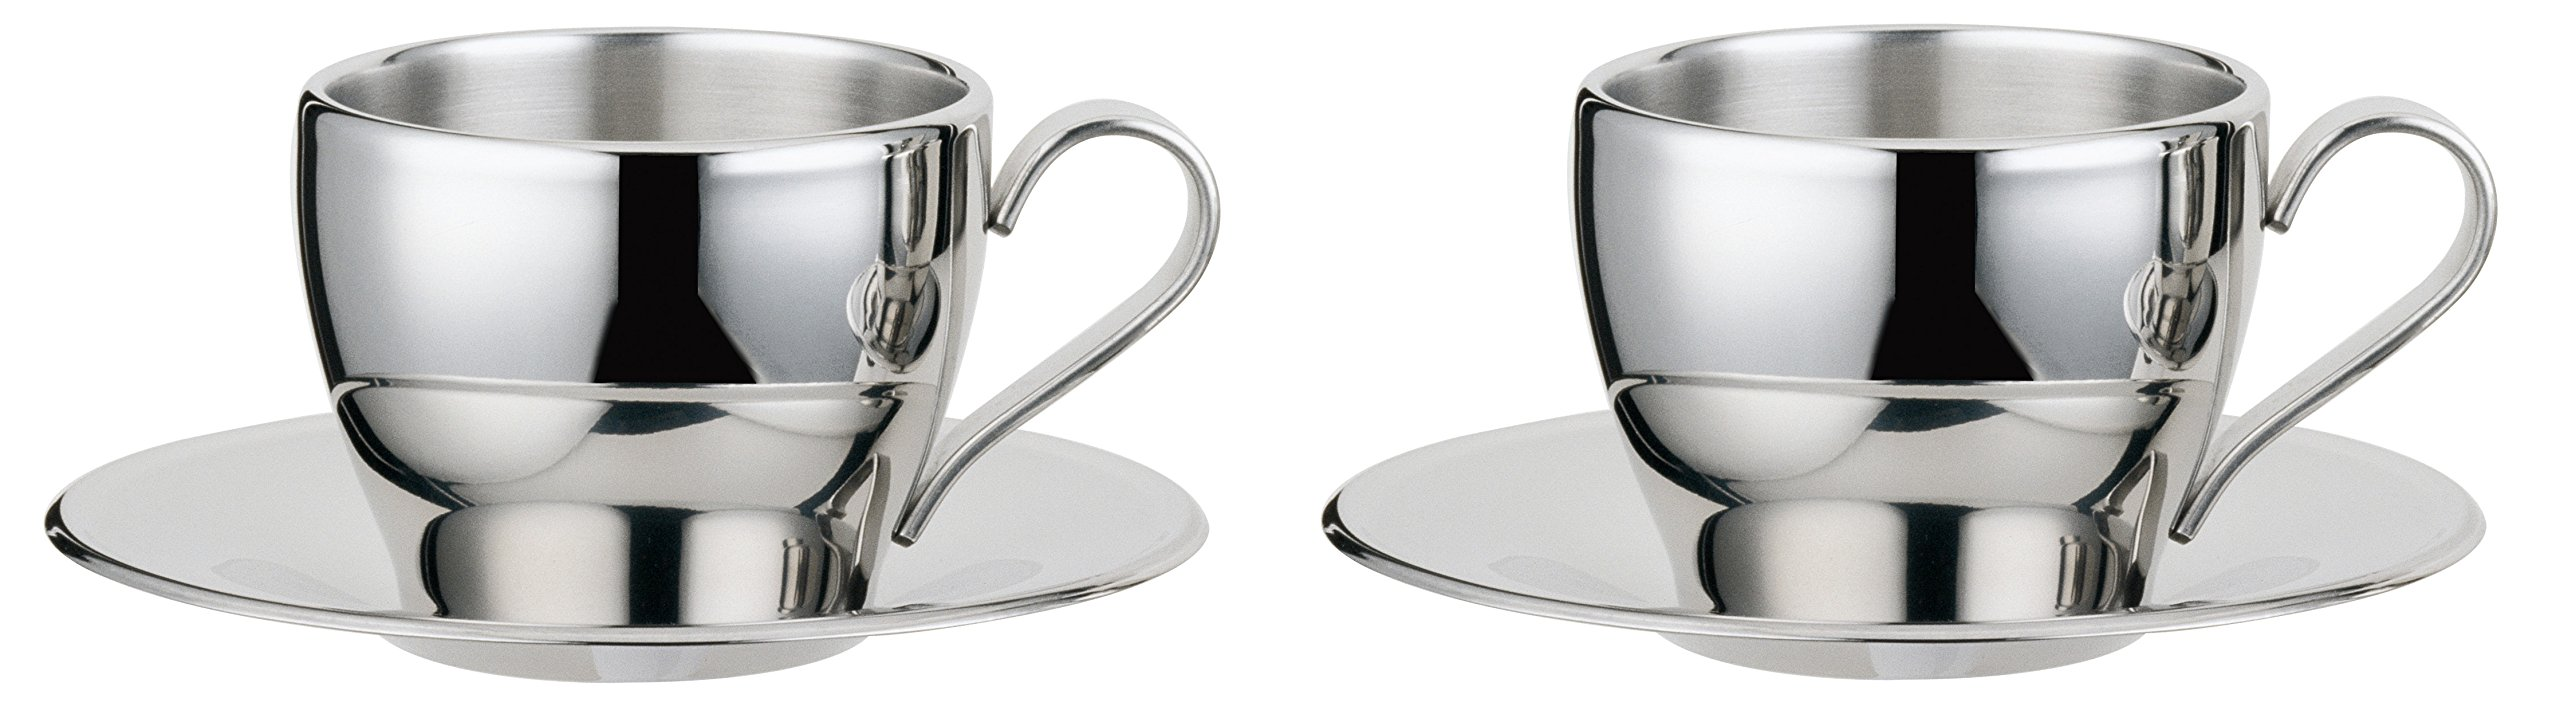 Visol Cappuccino Stainless Steel Double Walled Cup with Saucer (2 Pack), Silver